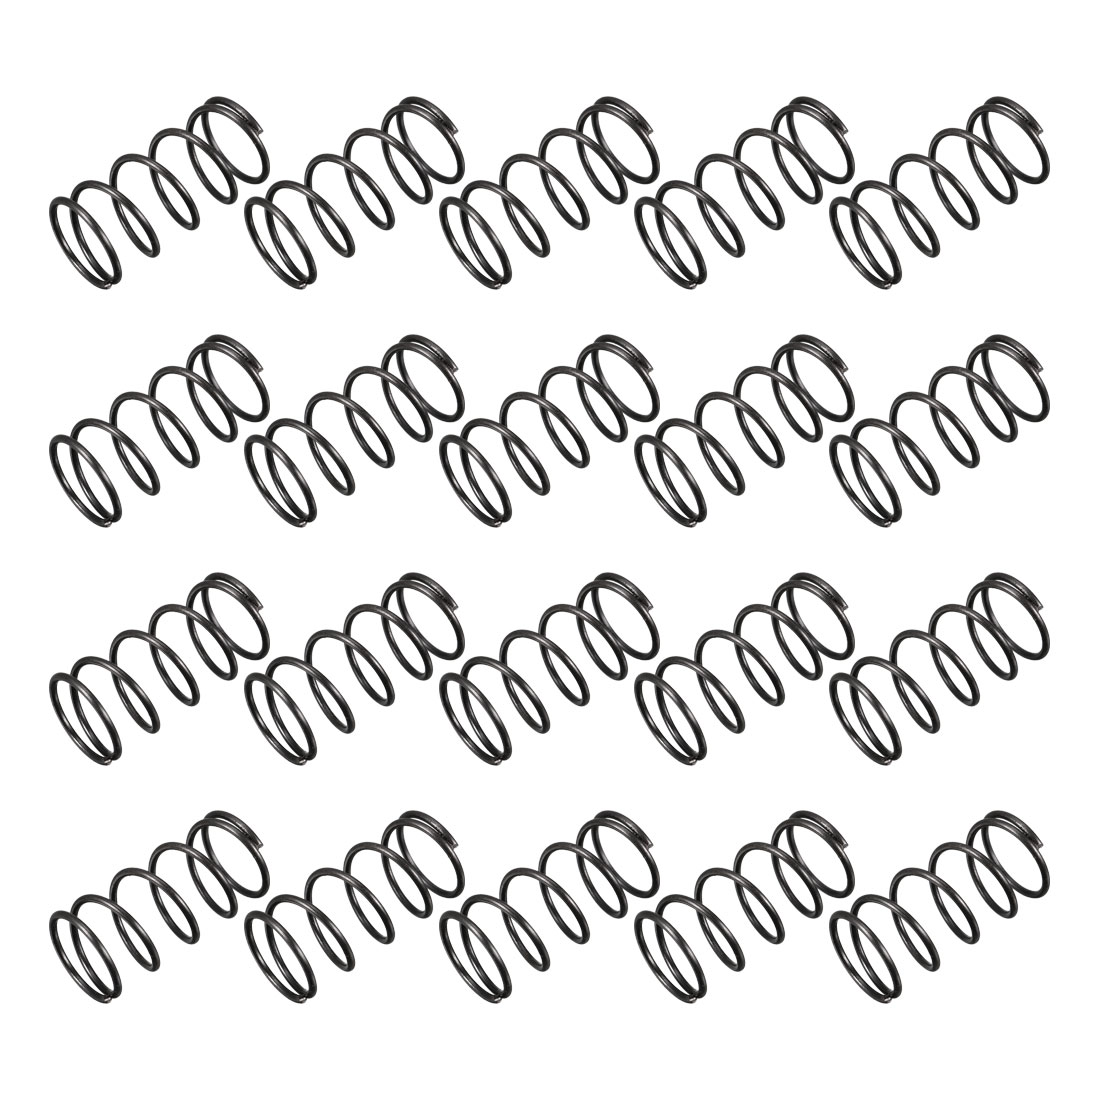 1.2mm Wire Dia 15mm Outer Diameter 30mm Long Compression Springs Black 20pcs